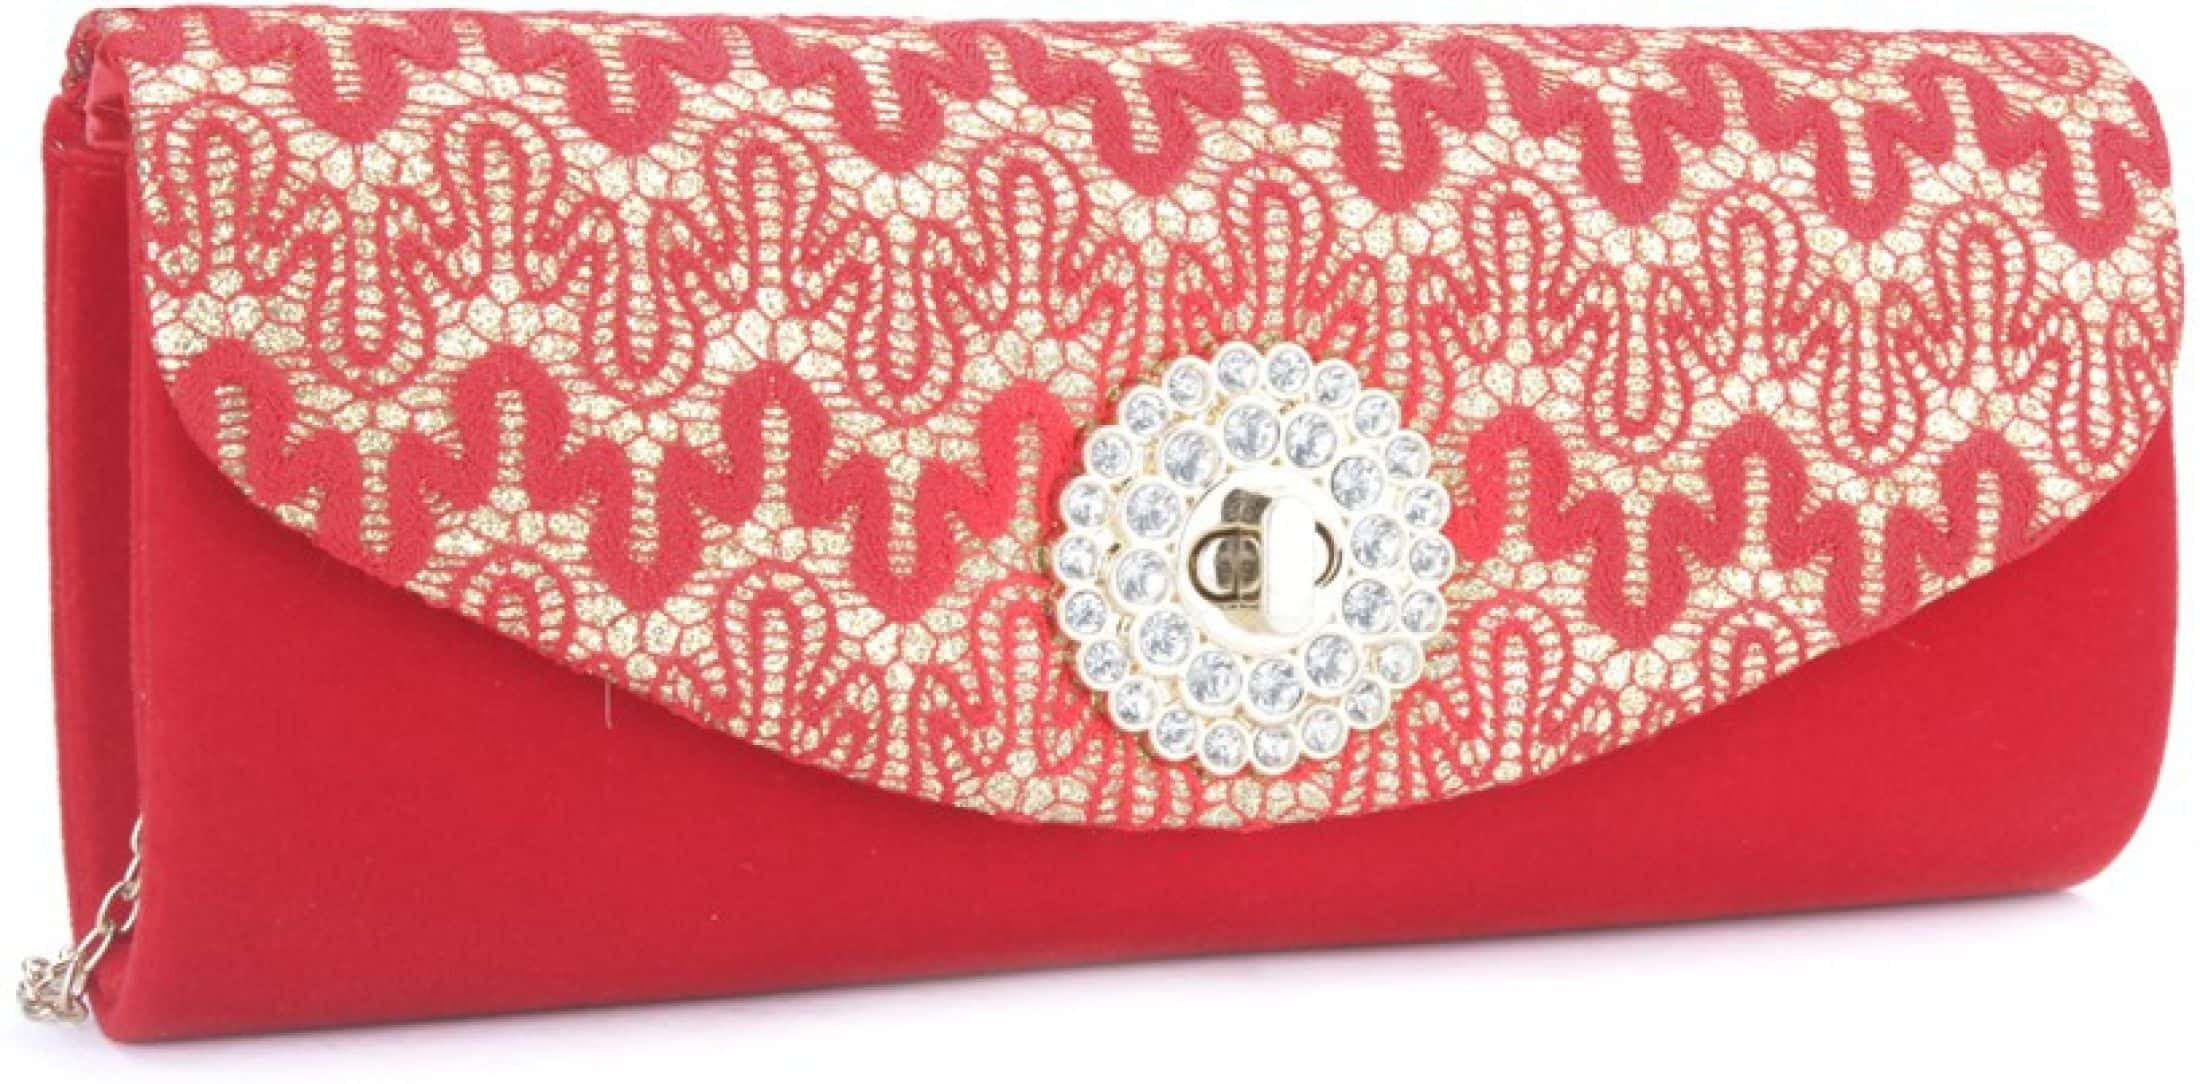 Archie's -- Women's Clutch at Flat 92% Off